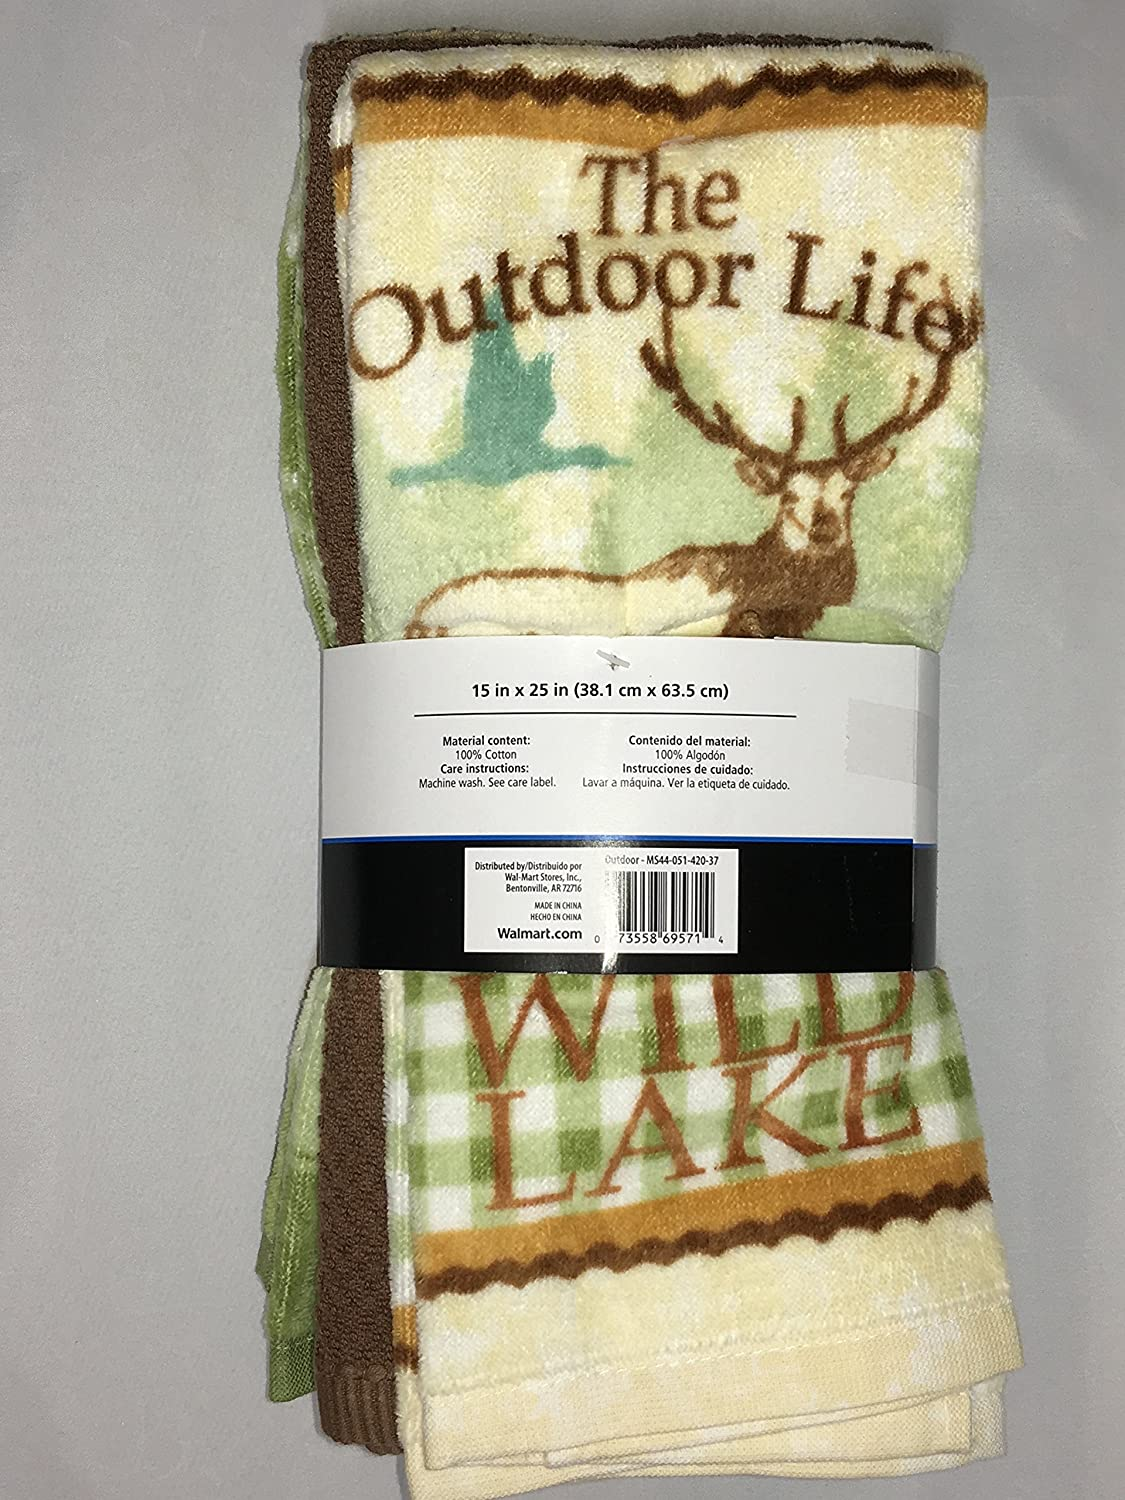 Amazon.com: Outdoor Life Kitchen Towels 5 Piece Set - 2 Print and 3 Plain: Home & Kitchen